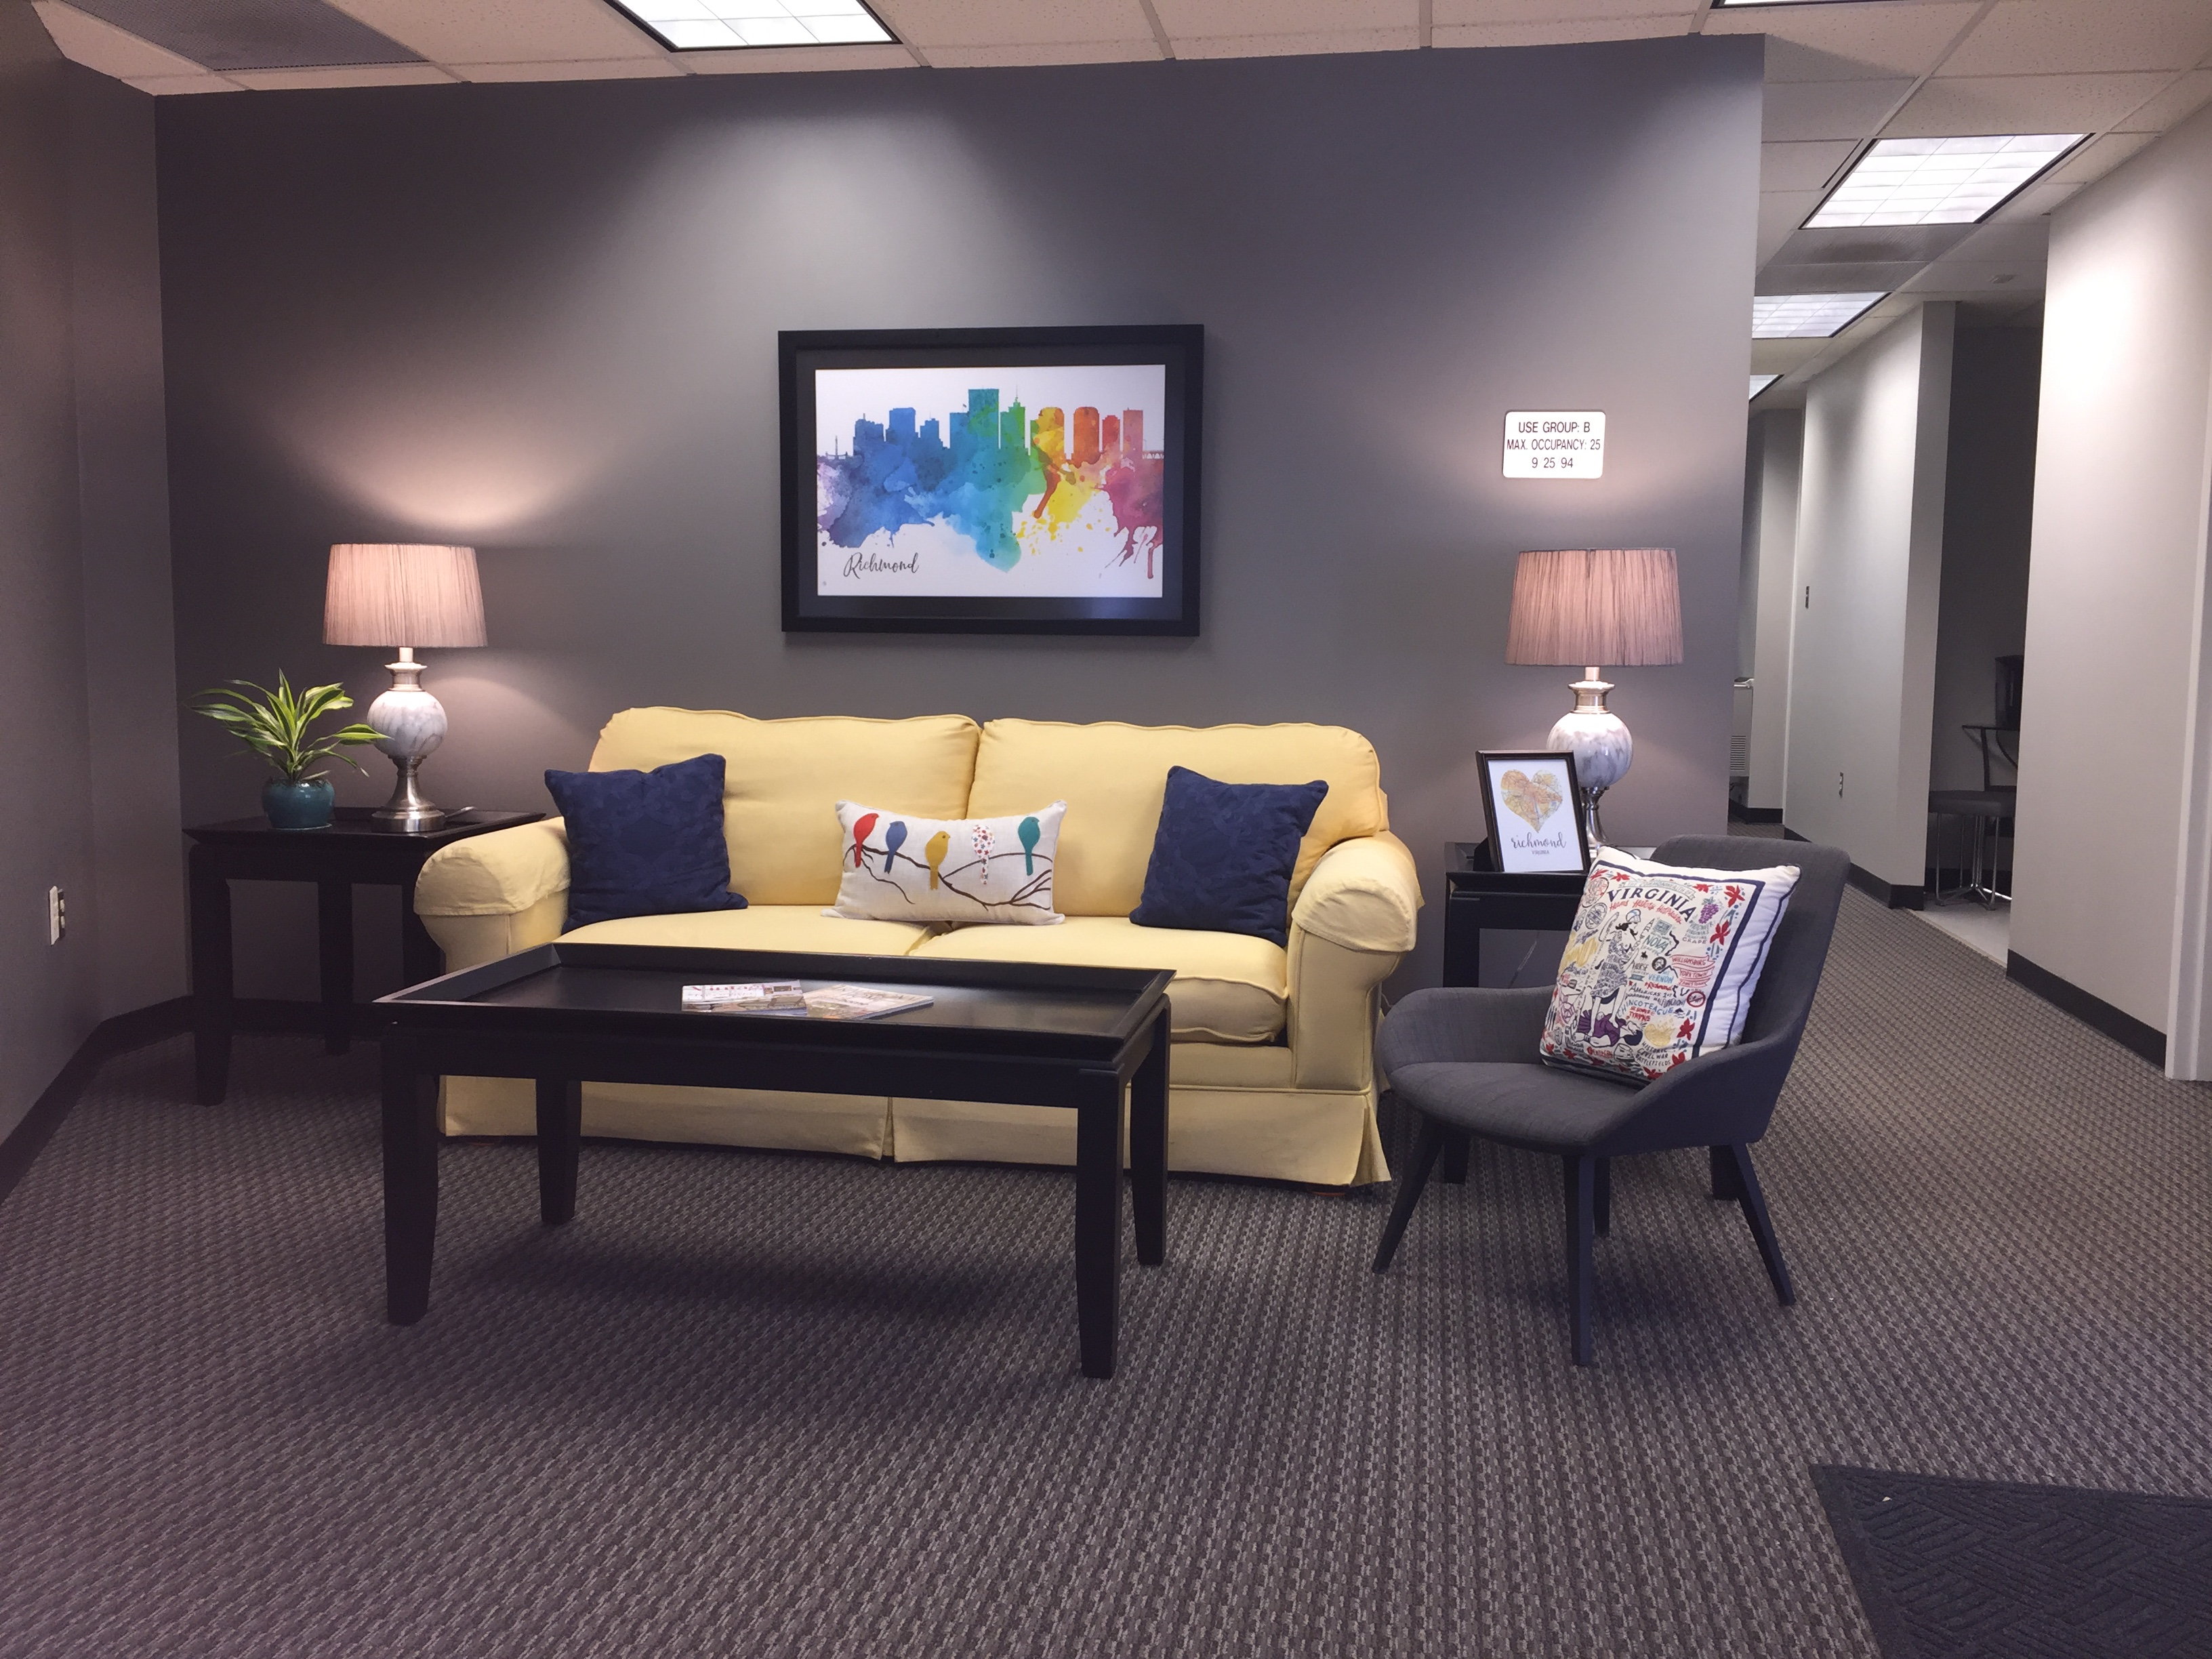 Reception area and hall at RVA Elite Realtors